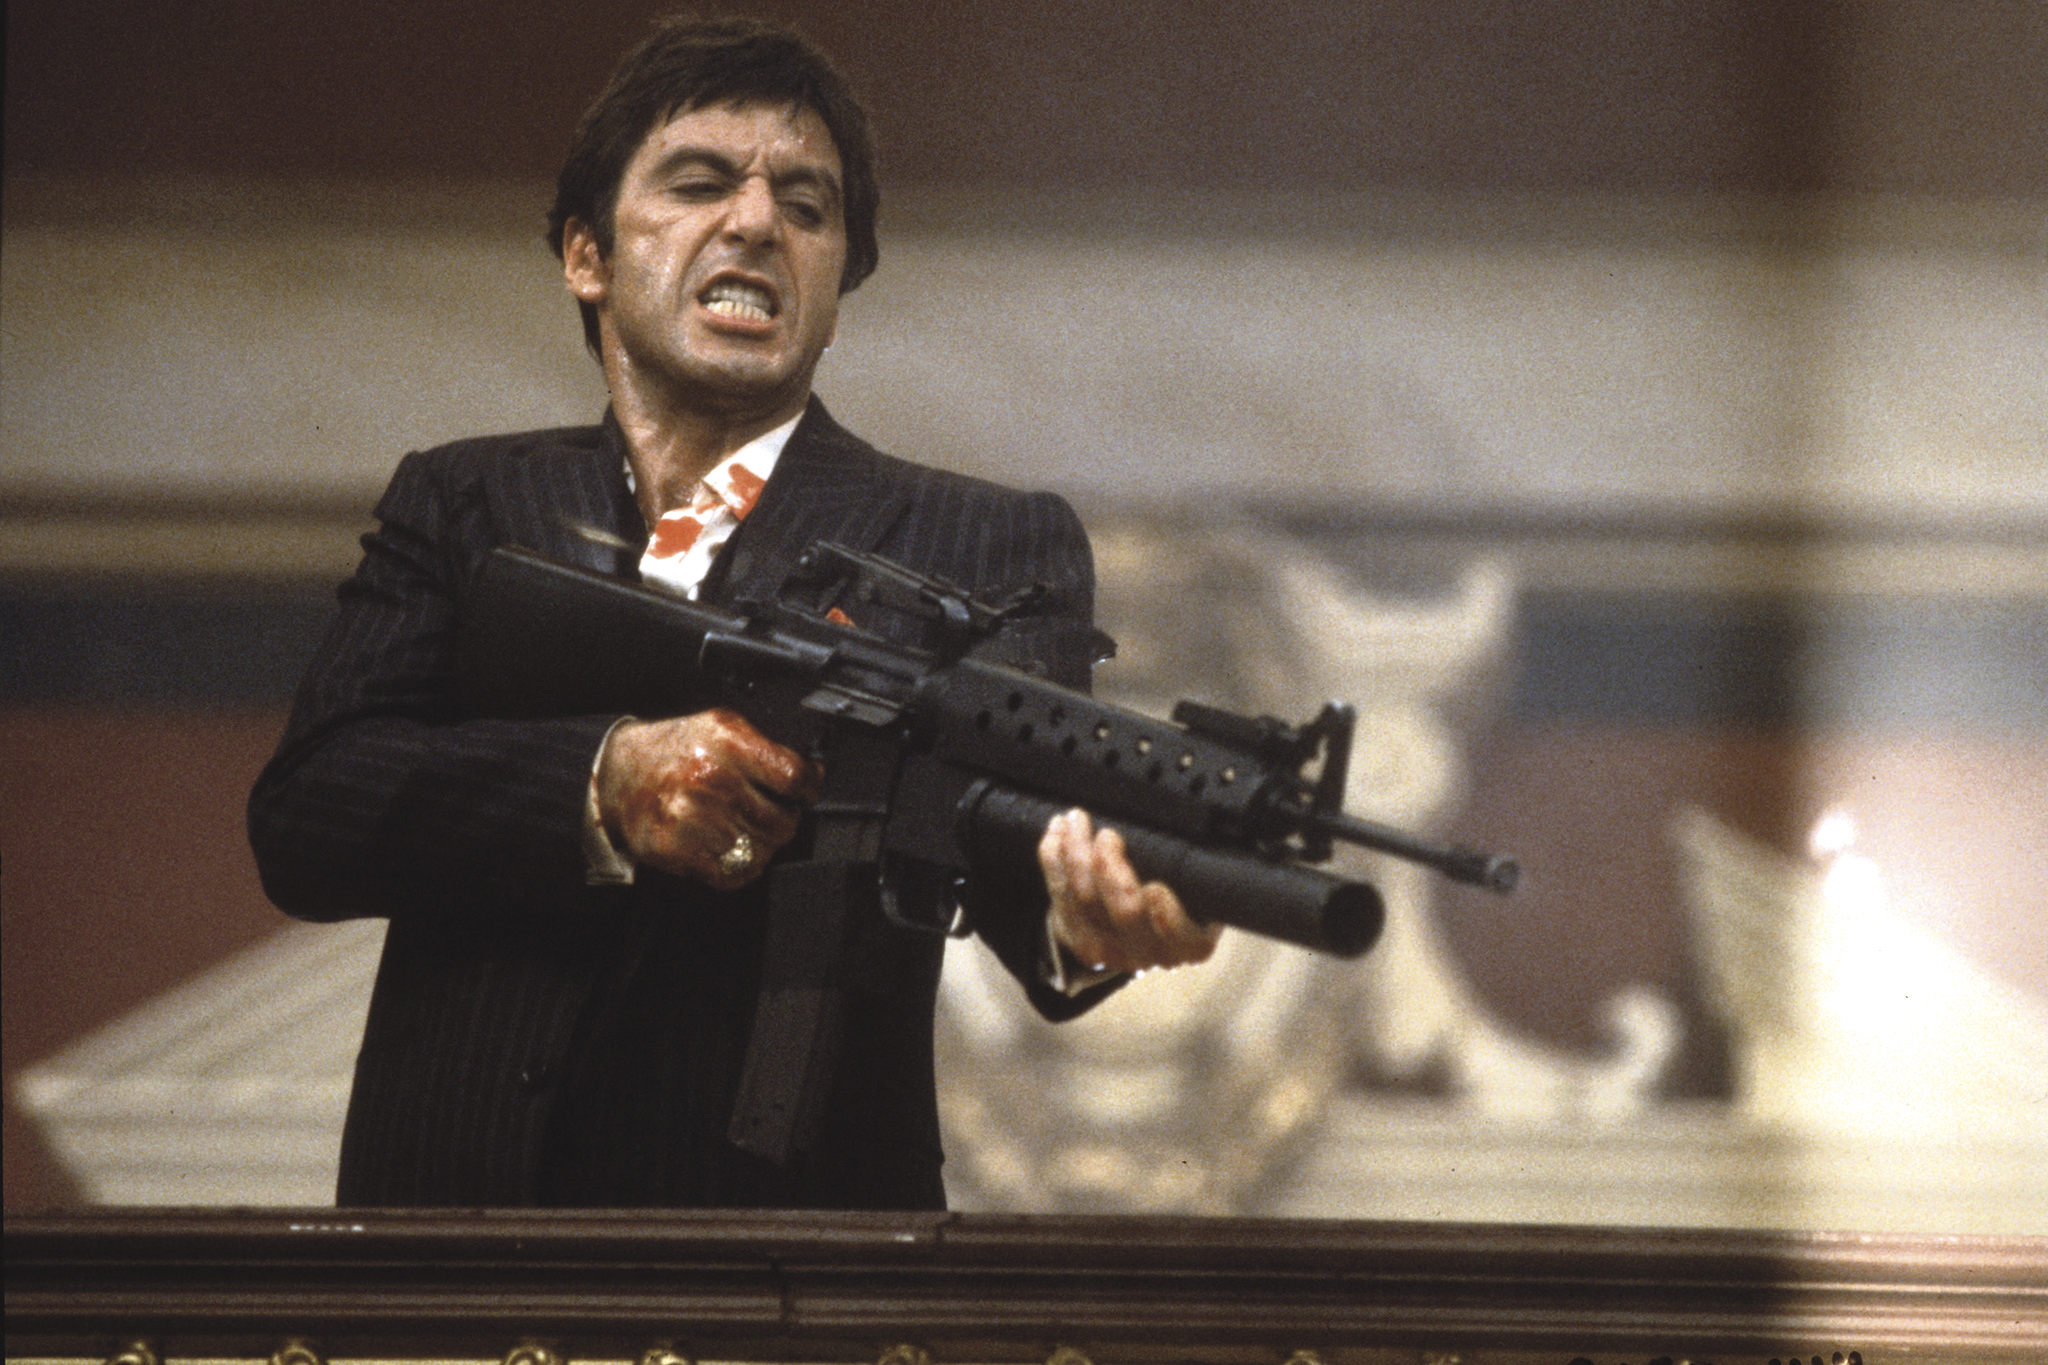 Glock Wallpaper Hd Scarface Directed By Brian De Palma Film Review